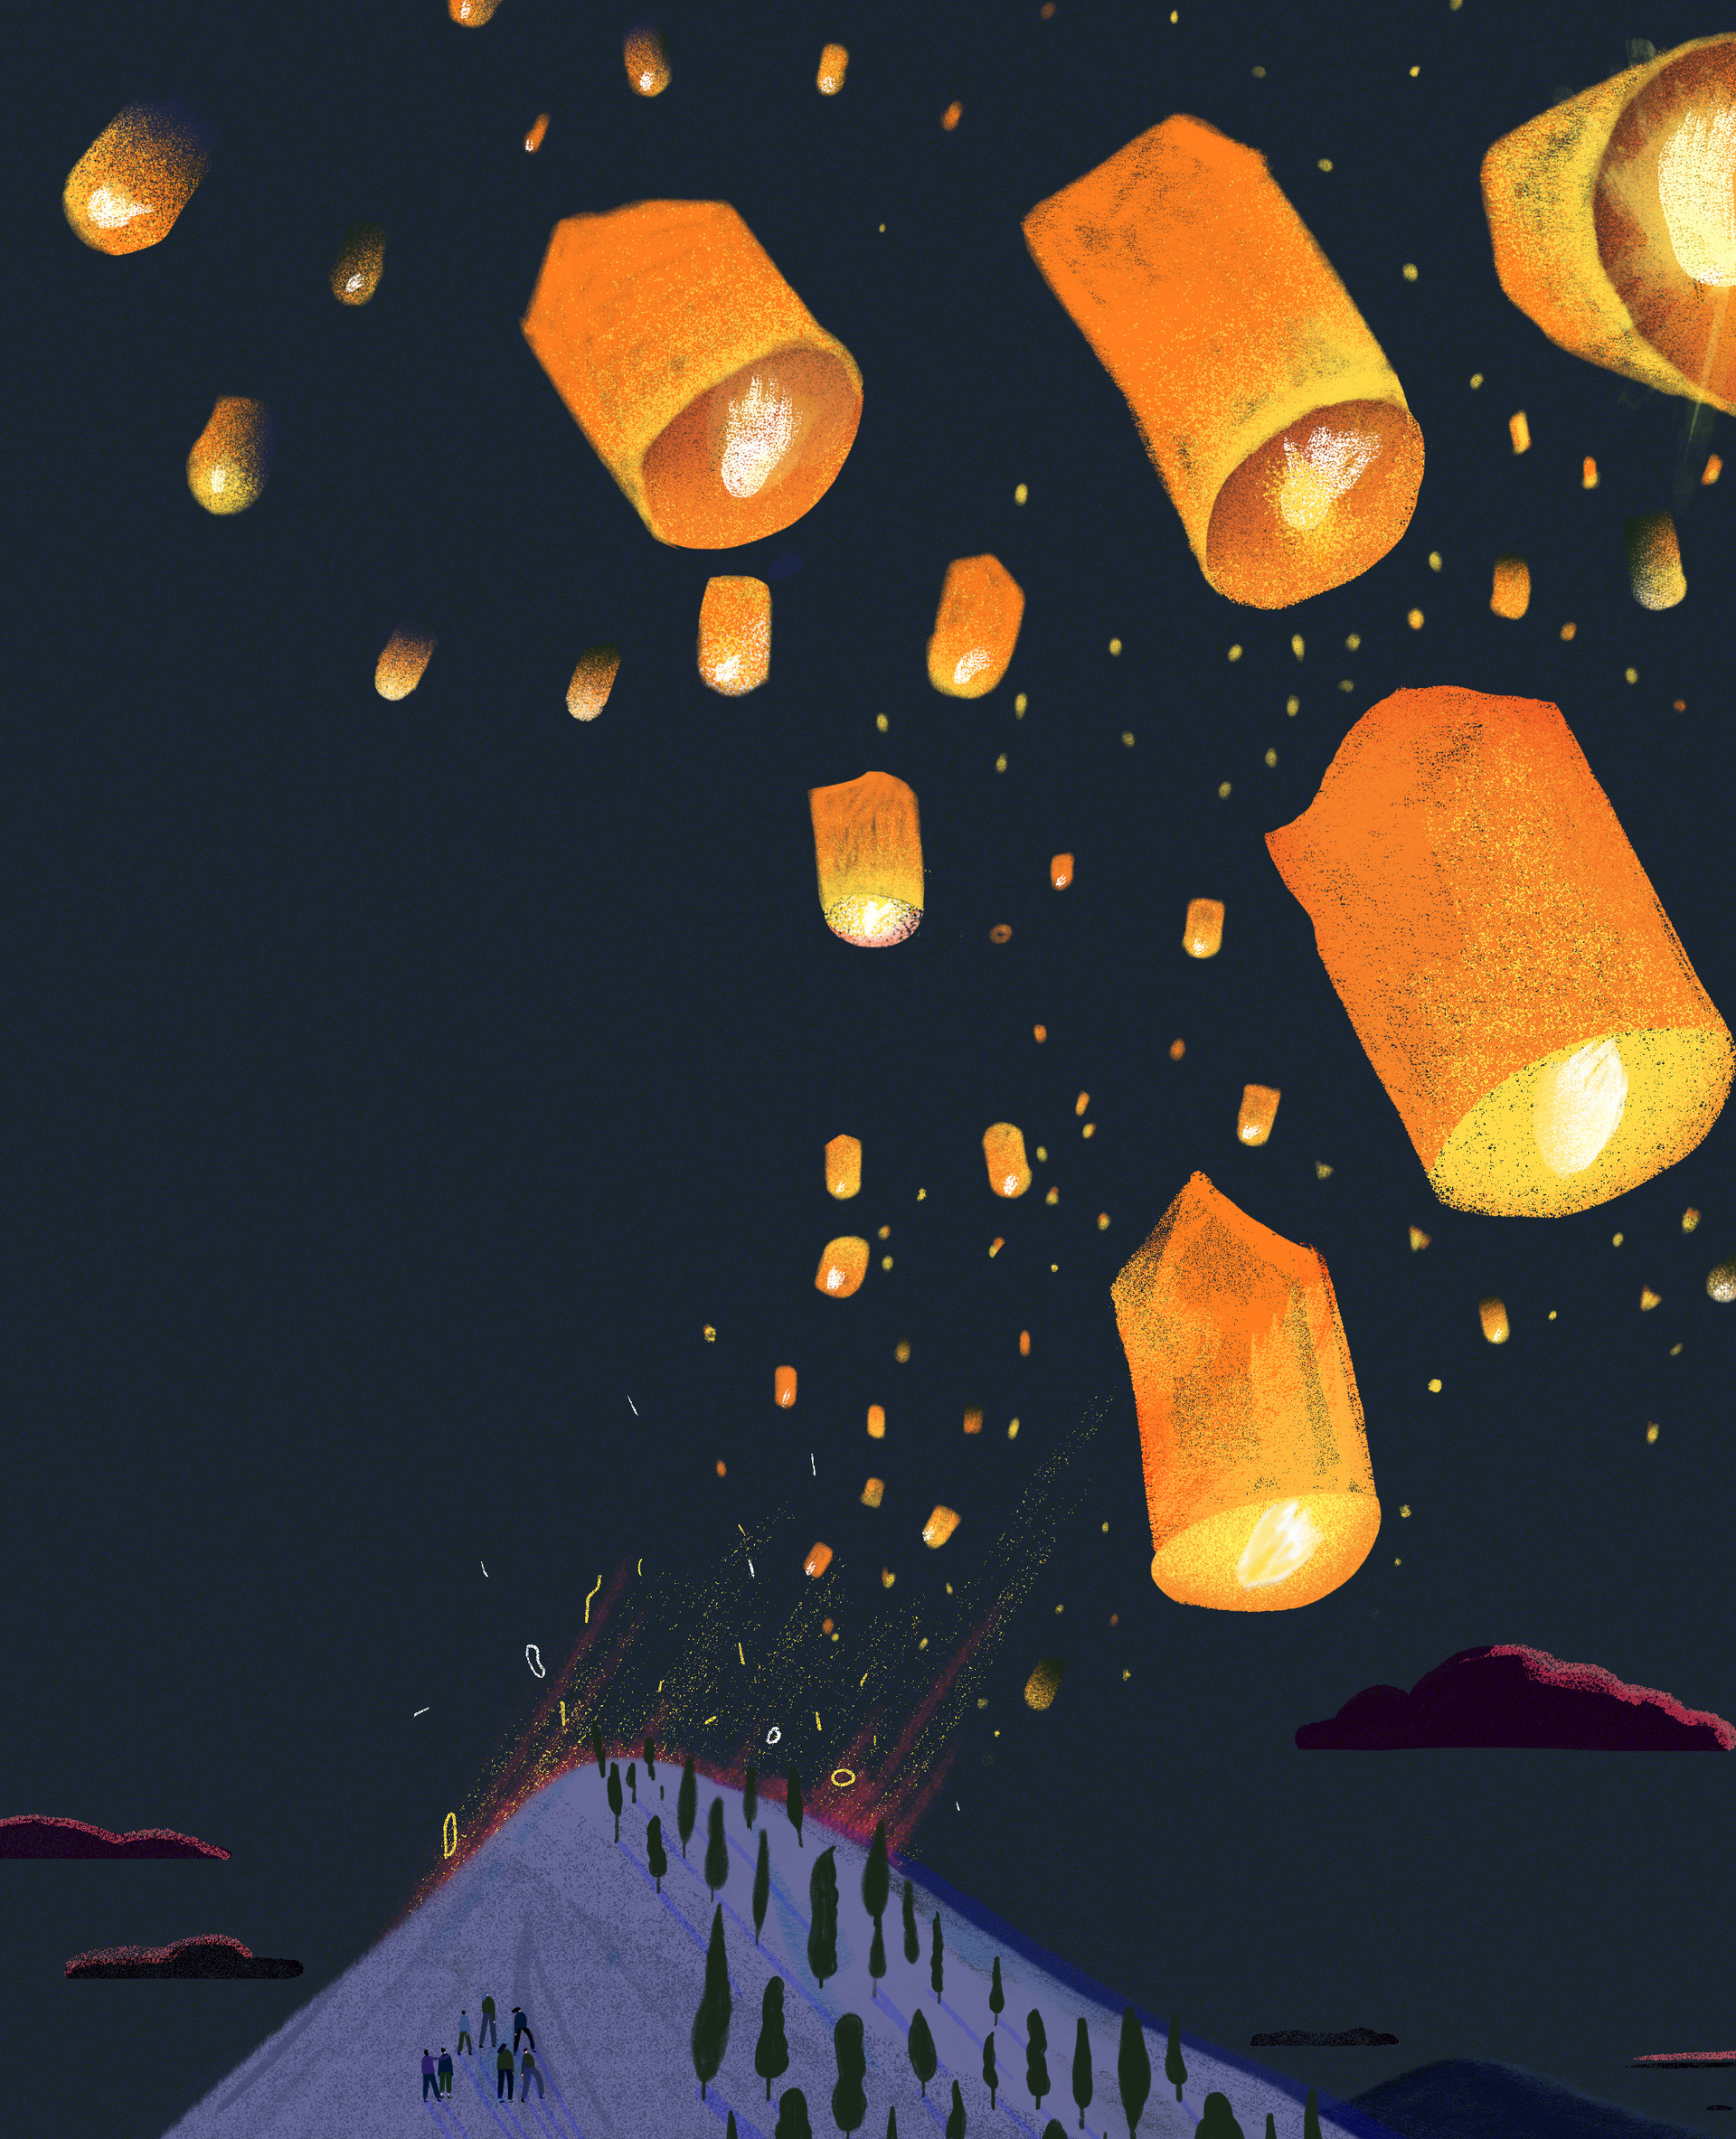 One thousand lanterns